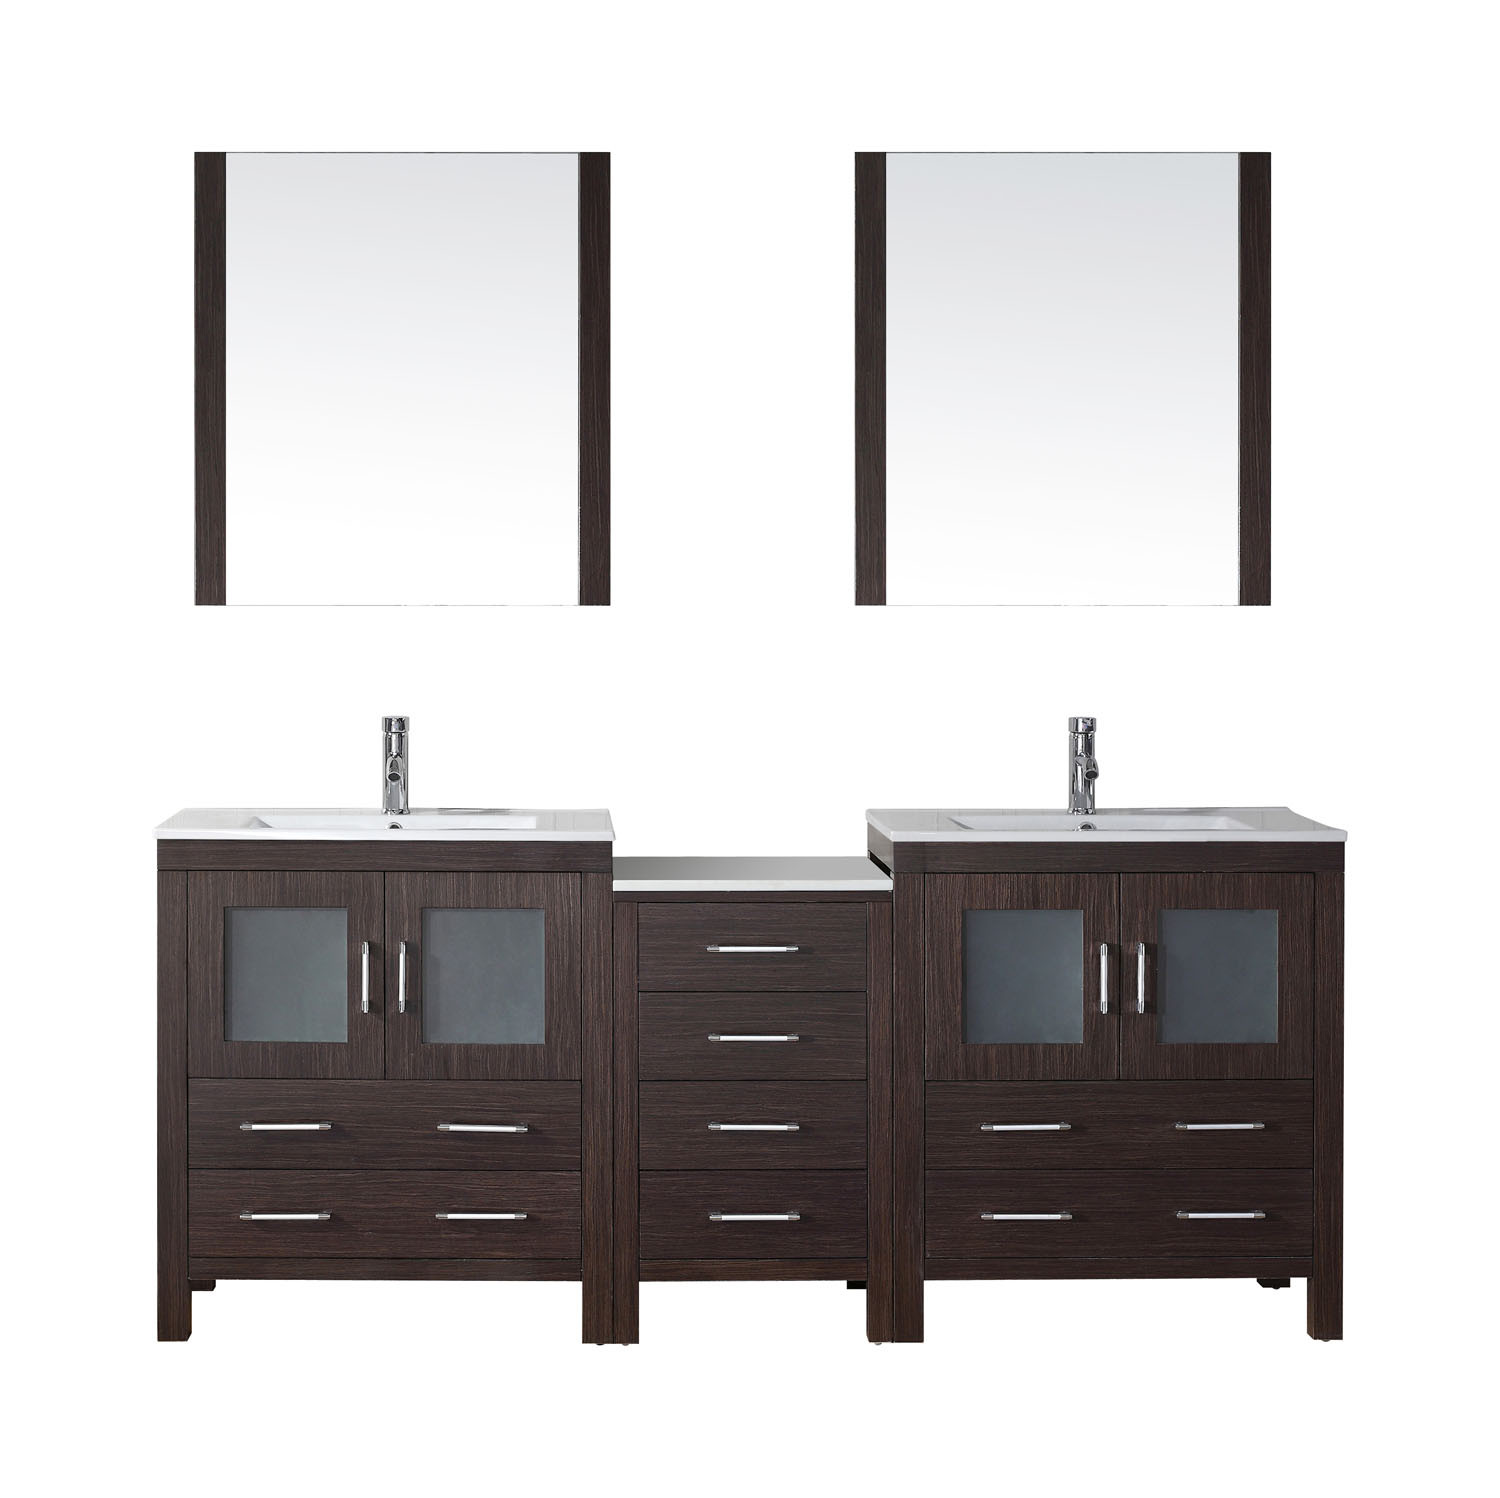 Virtu KD-70078-C-ES-001 Dior 78 Inch Double Bathroom Vanity Set In Espresso